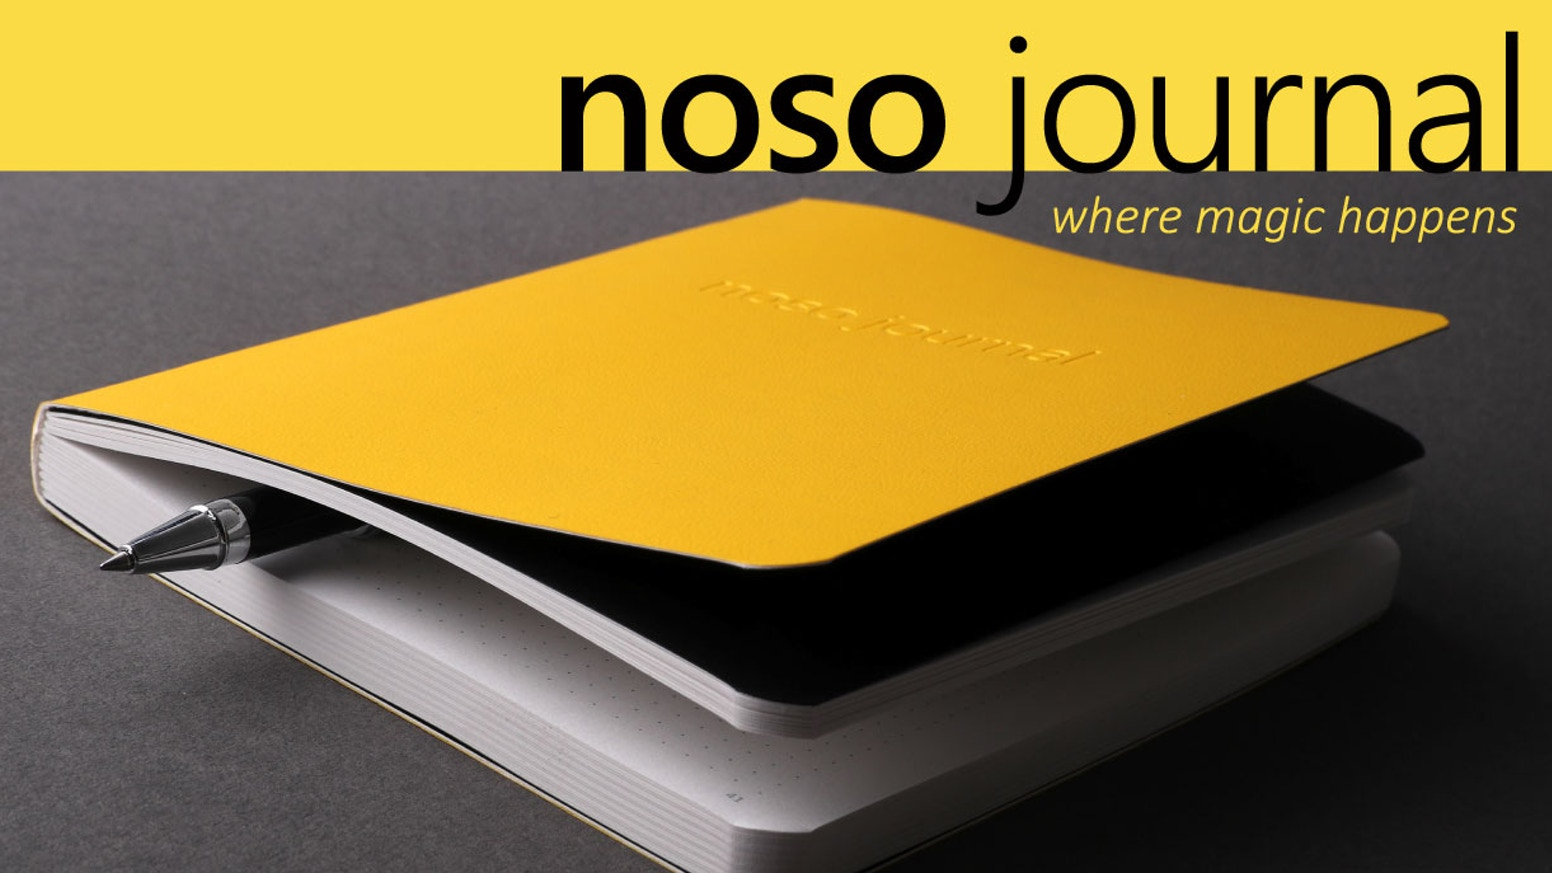 The NOSO Journal is an integrated diary and notebook for teenagers, helping them to grow into their best selves.